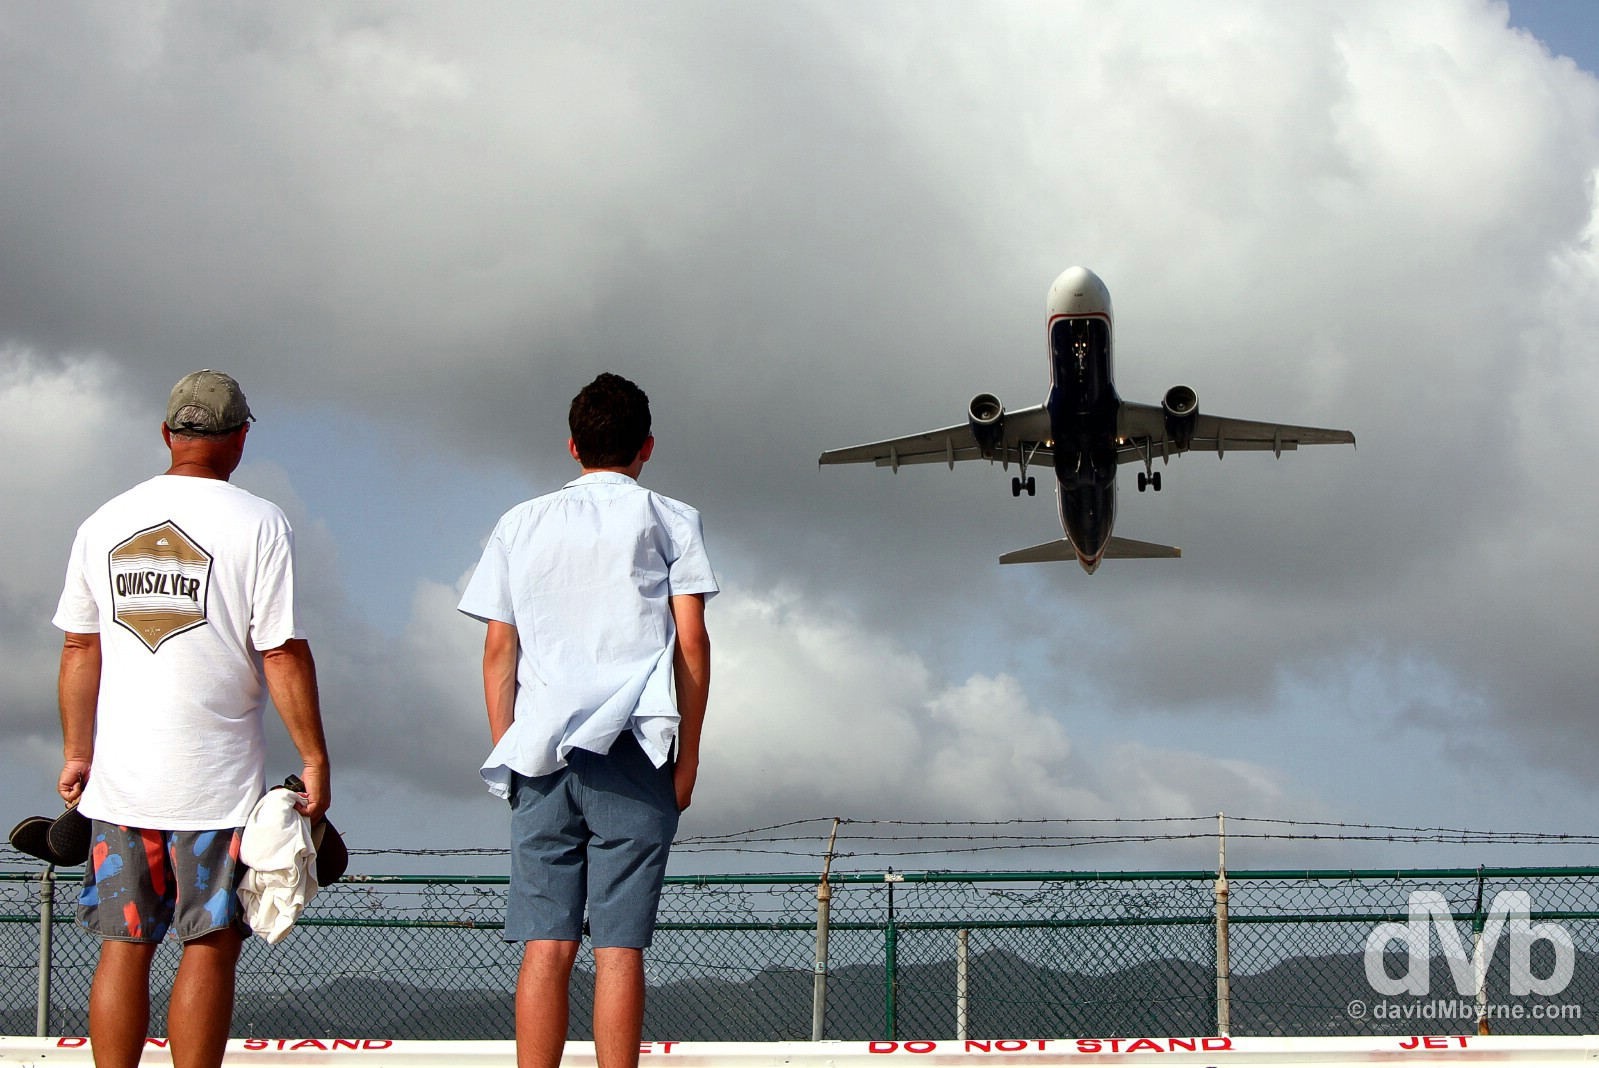 Take-off from Juliana Airport as viewed from Maho Beach, Sint Maarten, Lesser Antilles. June 7, 2015.